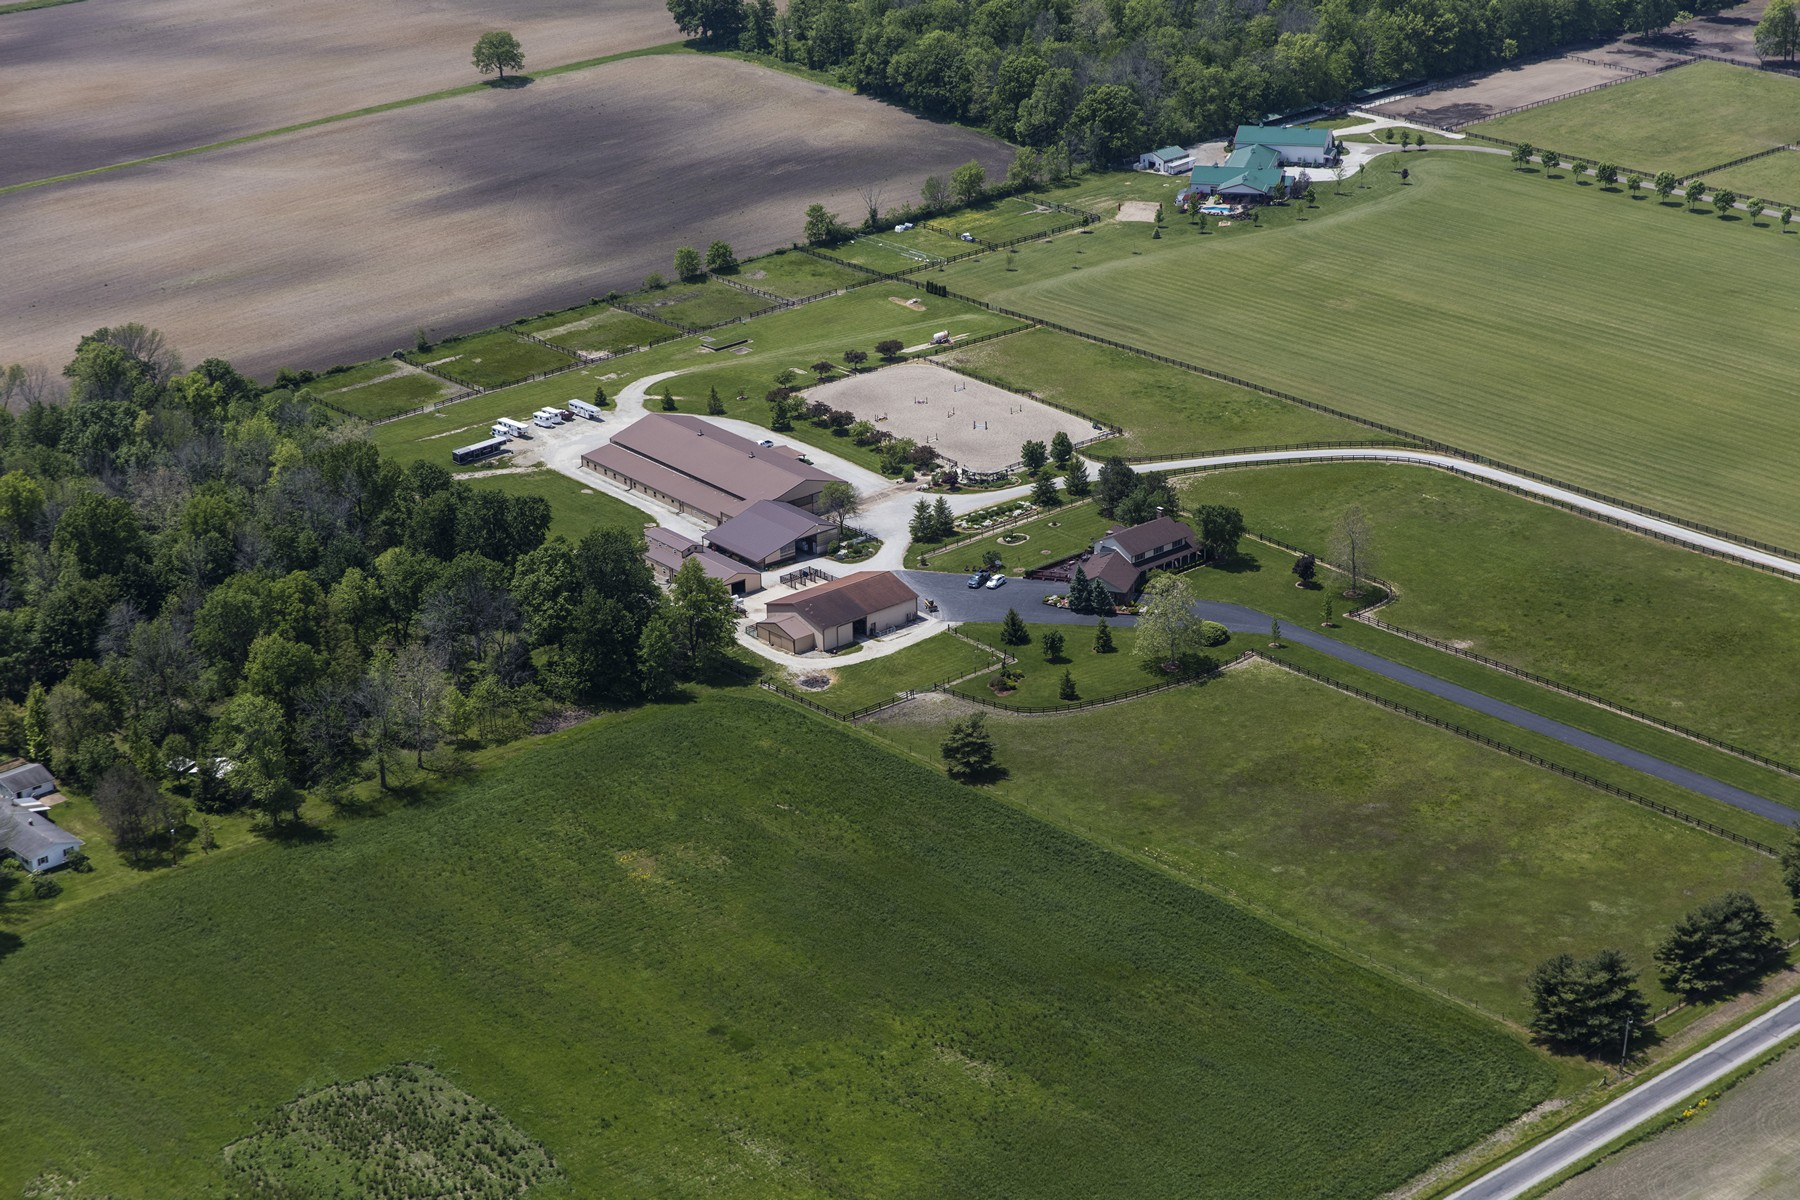 Single Family Home for Sale at Elite Equine Property 7829 E 100 N Zionsville, Indiana 46075 United States